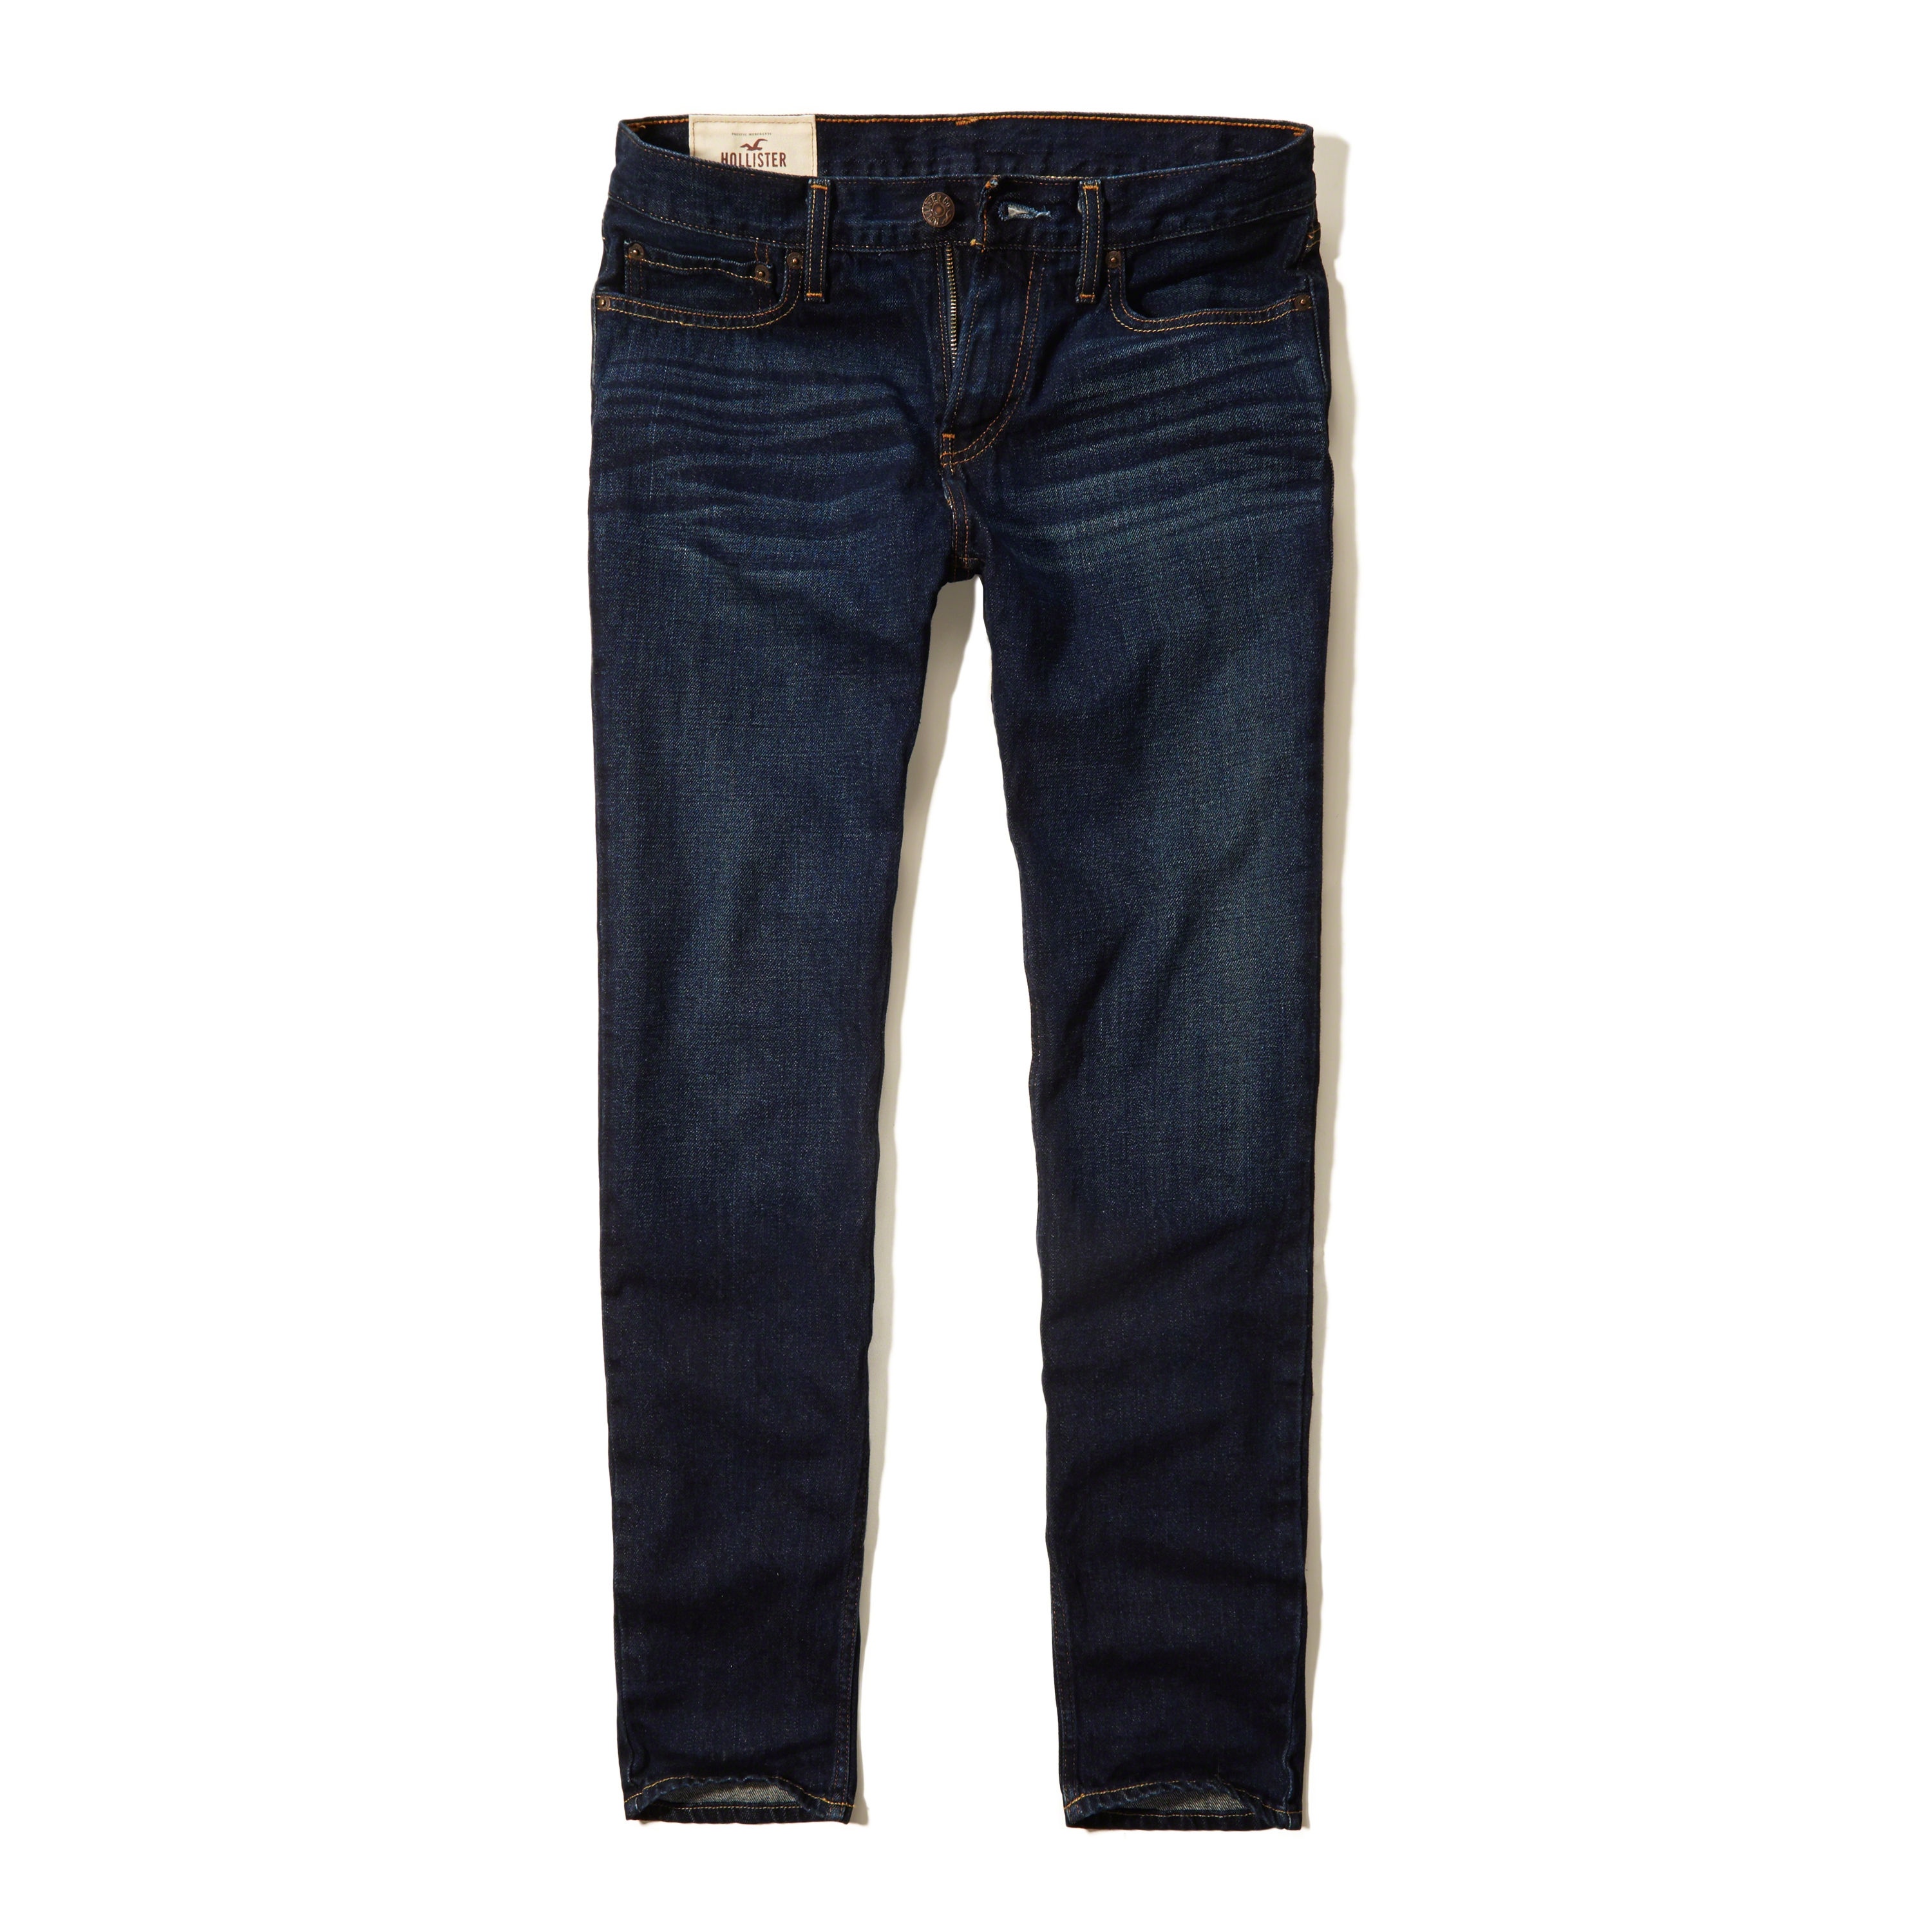 hollister dark jeans for men - photo #32